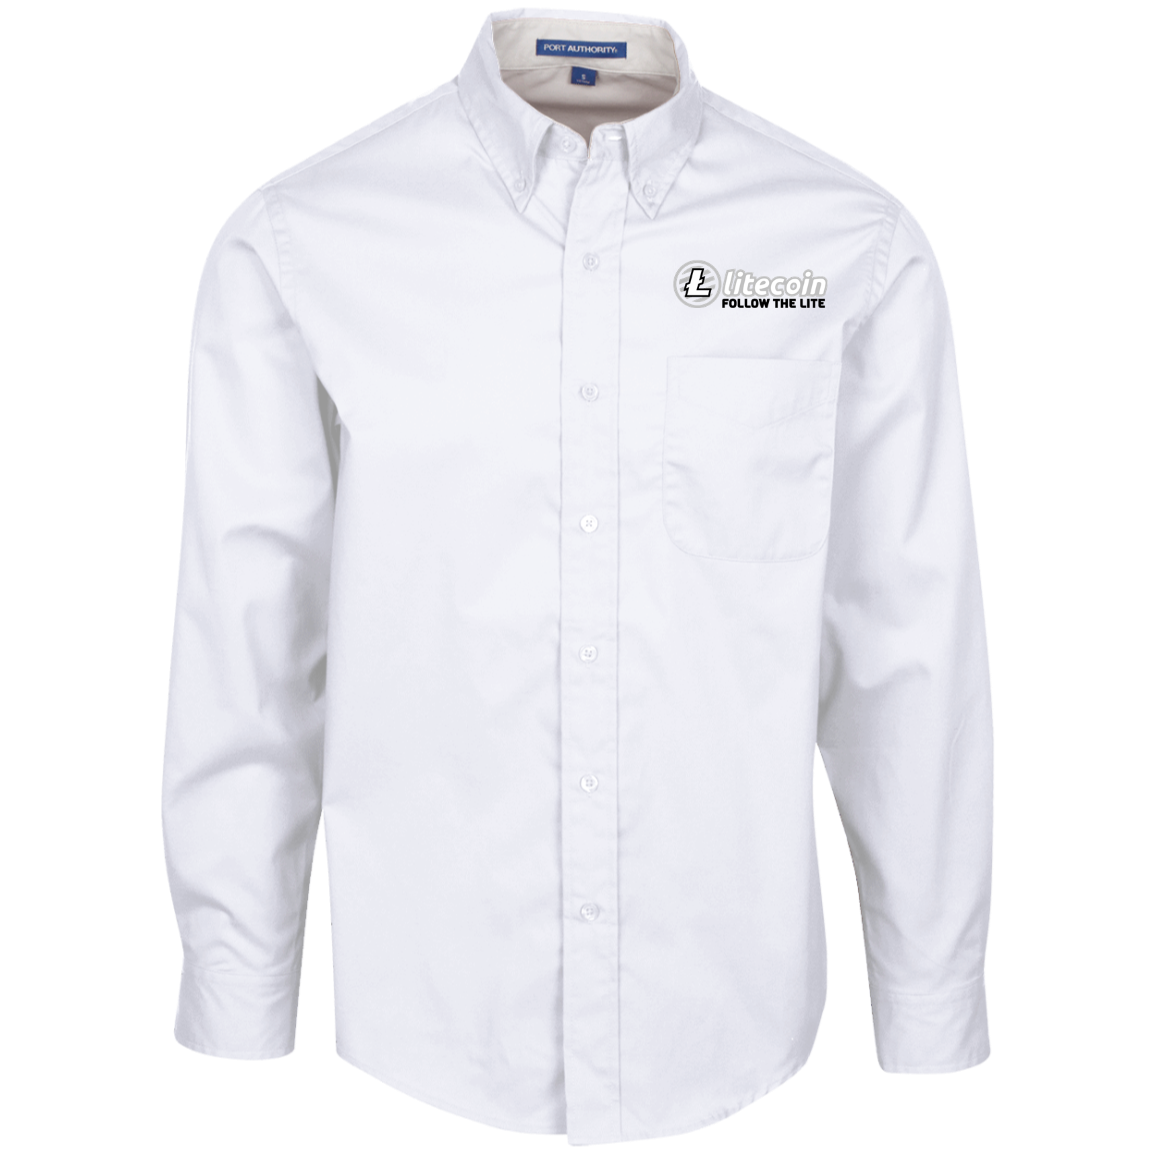 Litecoin Follow The Lite – Embroidered Long Sleeve Shirt by Port Authority